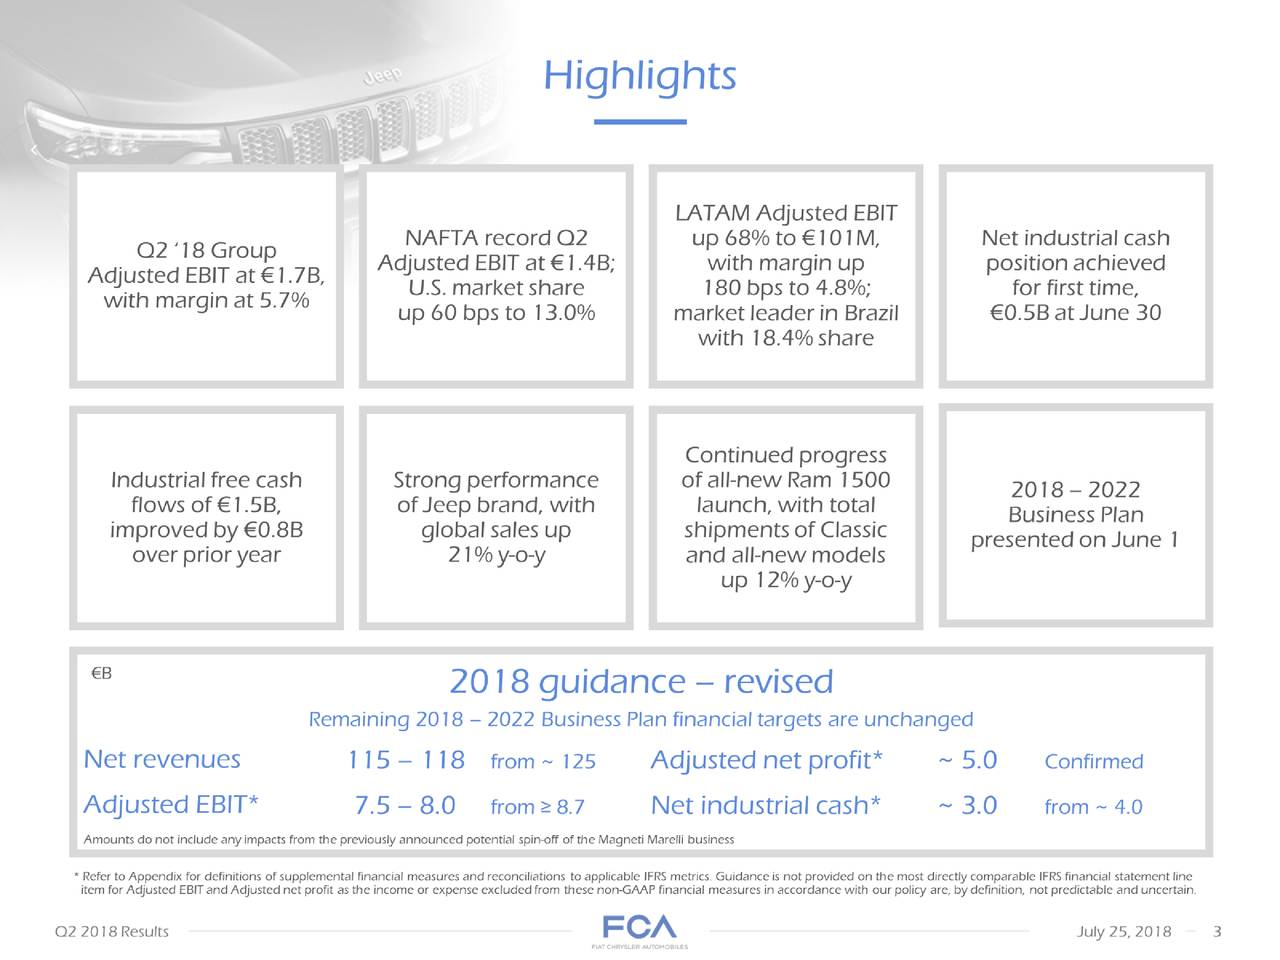 applicable IFRS metrics. Guidance is not provided on the most directly comparable IFRS financial statement line item for Adjusted EBITand Adjusted net profit as the income or expense excluded from these non-GAAPfinancial measures in accordance with our policy are, bydefinition, not predictable and uncertain. Highlights 2018 guidance– revised • Adjusted EBITat €1.7B, with margin at 5.7% NAFTArecord Q2 Adjusted EBIT at €1.4B;U.S. market share up 60 bps to 13.0% LATAM Adjusted EBITup 68% to €101M,with margin up 180 bps to 4.8%; market leader in Brazil with 18.4% share Net industrial cash position achieved for first time, performancene 30 Industrial free cash flows of €1.5B, improved by €0.8B over prior year Strong of Jeep brand, with global sales up 21% y-o-y Continued progress of all-new Ram1500 launch, with total shipments of Classic and all-new models up 12% y-o-y Amounts do not include anyimpacts from the previously announcedpotential Business Planhe MagnetiMarelli business 2018 – 2022 presented on June 1